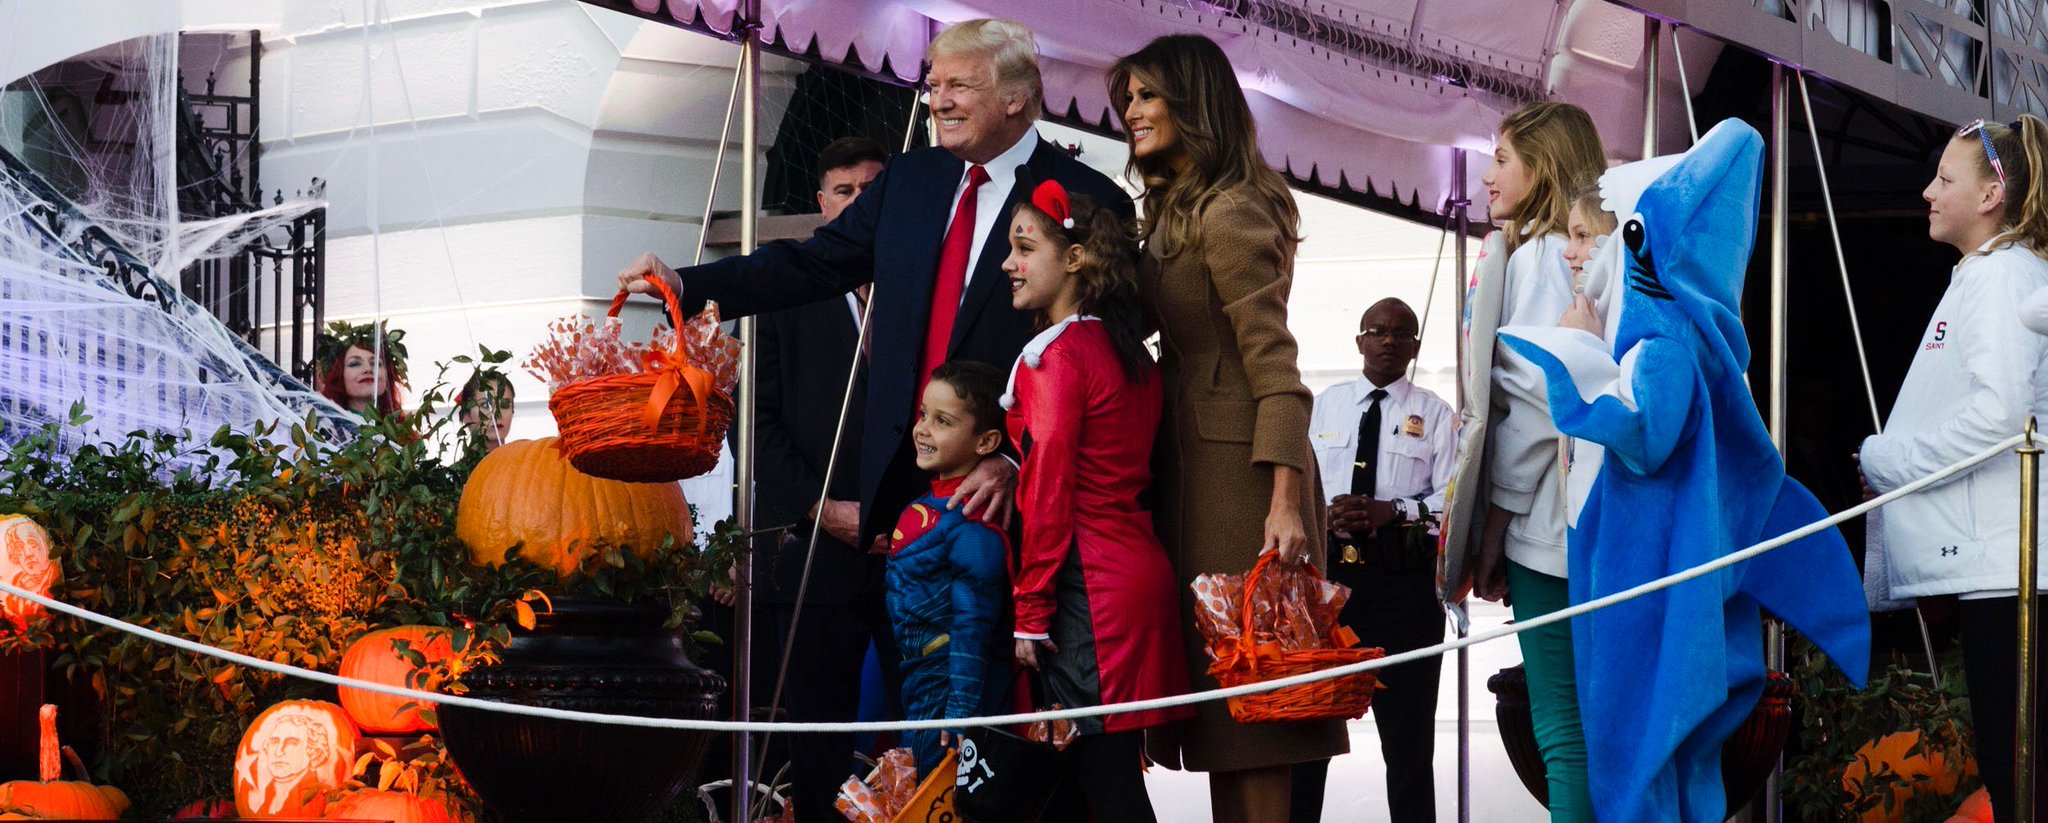 Wishing everyone a safe and Happy Halloween! #Halloween2017 https://t.co/BRpgXVRI8Y